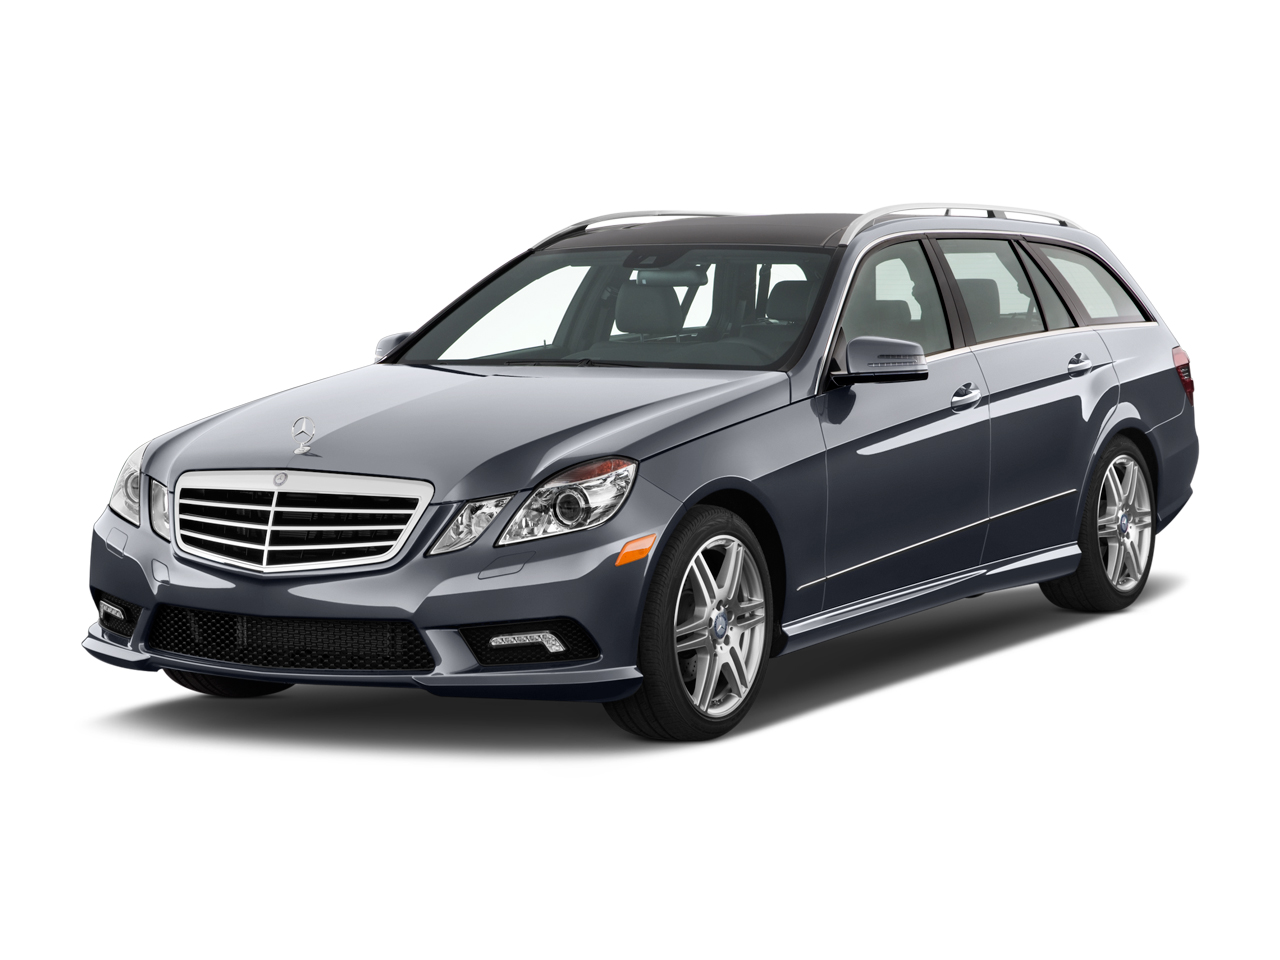 2011 mercedes benz e class review ratings specs prices and photos the car connection. Black Bedroom Furniture Sets. Home Design Ideas